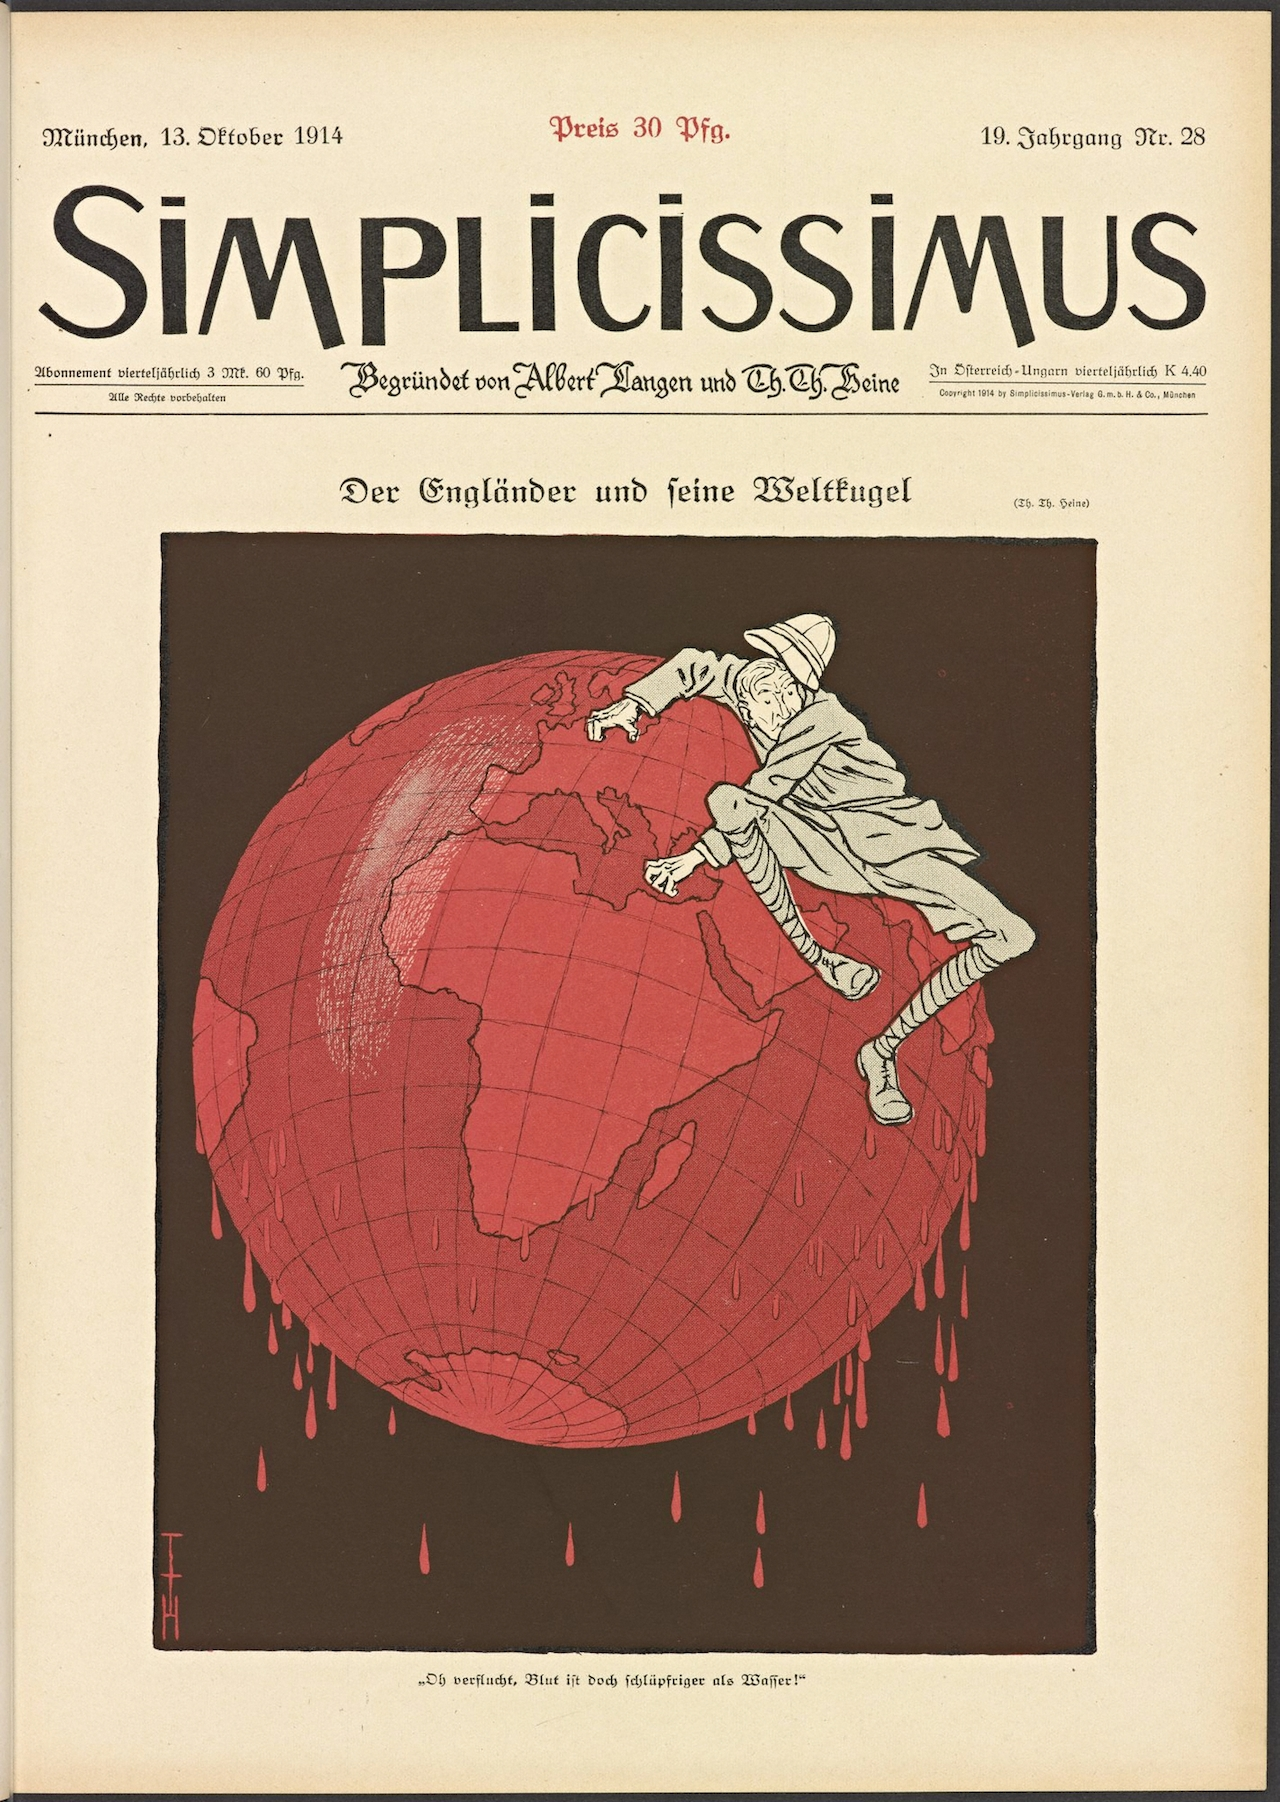 The Englishman and His Globe. Thomas Theodor Heine (1867–1948) Simplicissimus vol. 19, no. 28 (October 13, 1914): cover. The Getty Research Institute, Los Angeles (85-S1389). © 2014 Artists Rights Society (ARS), New York / VG Bild-Kunst, Bonn